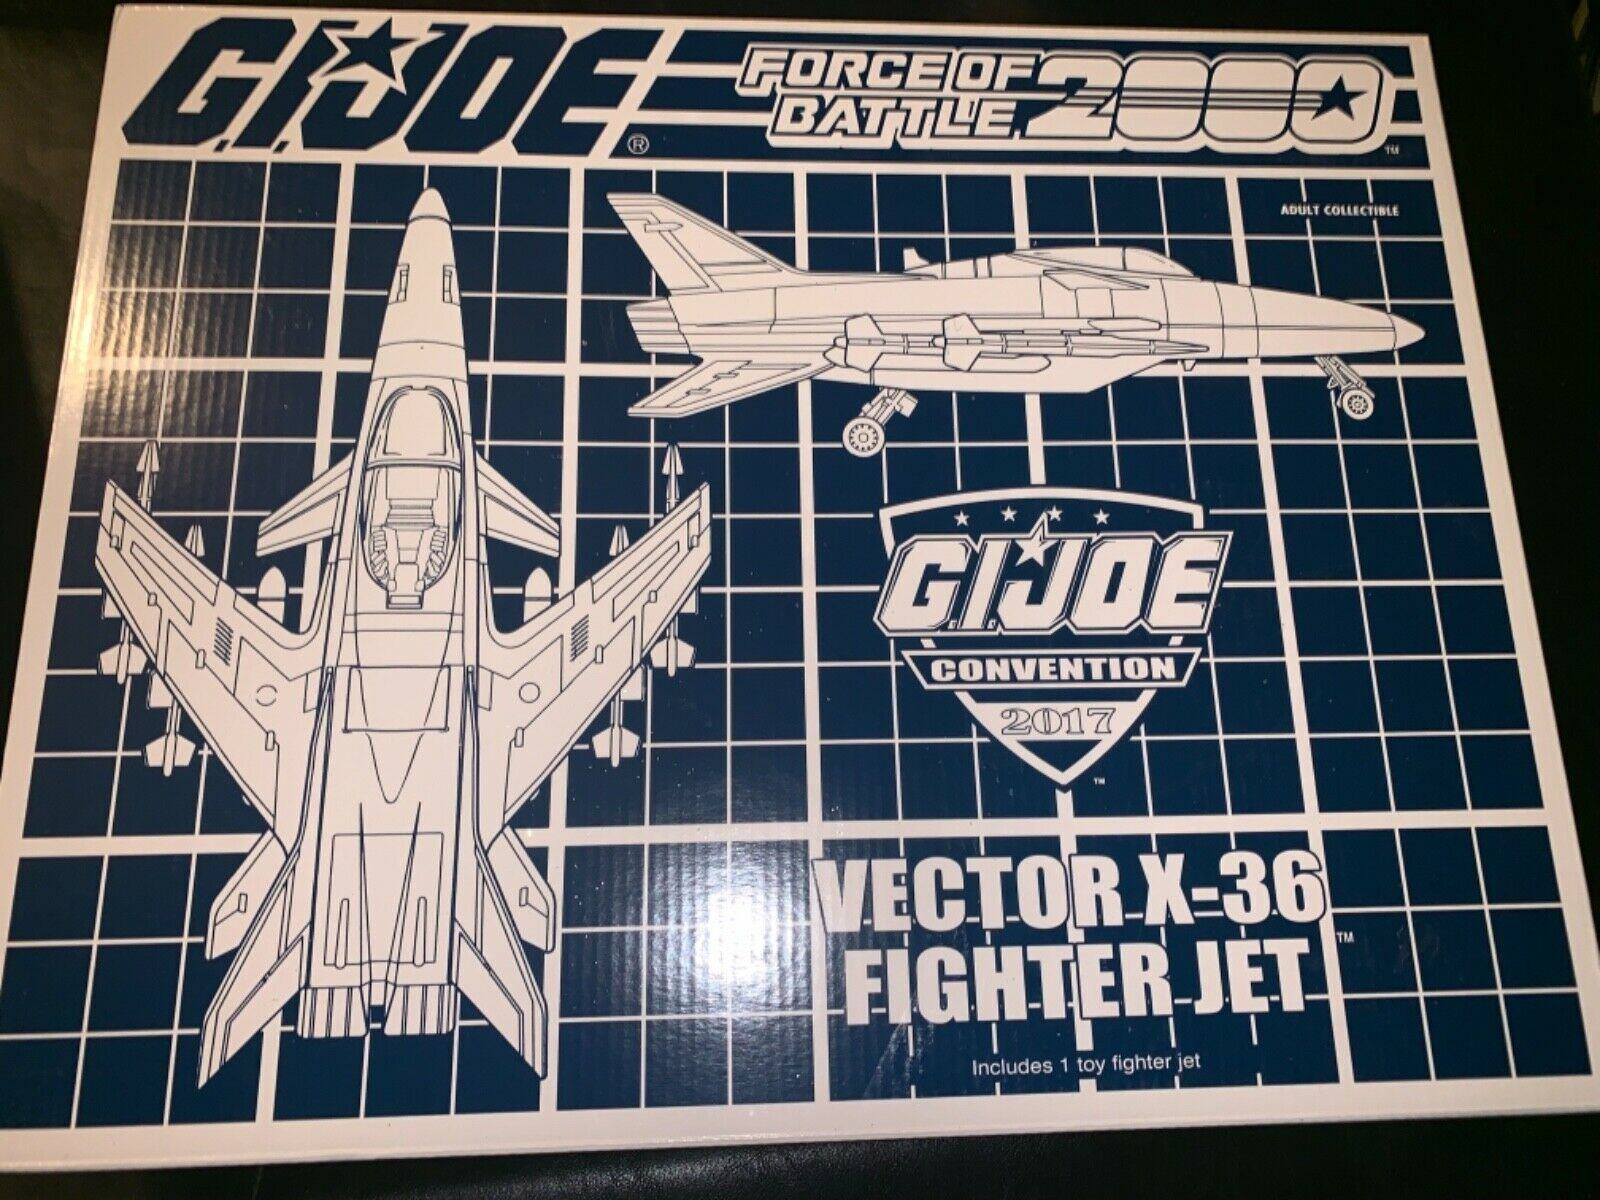 Gi Joe convenio con Exclusive 2017 Battle Force 2000 Vector (conquista) Raro